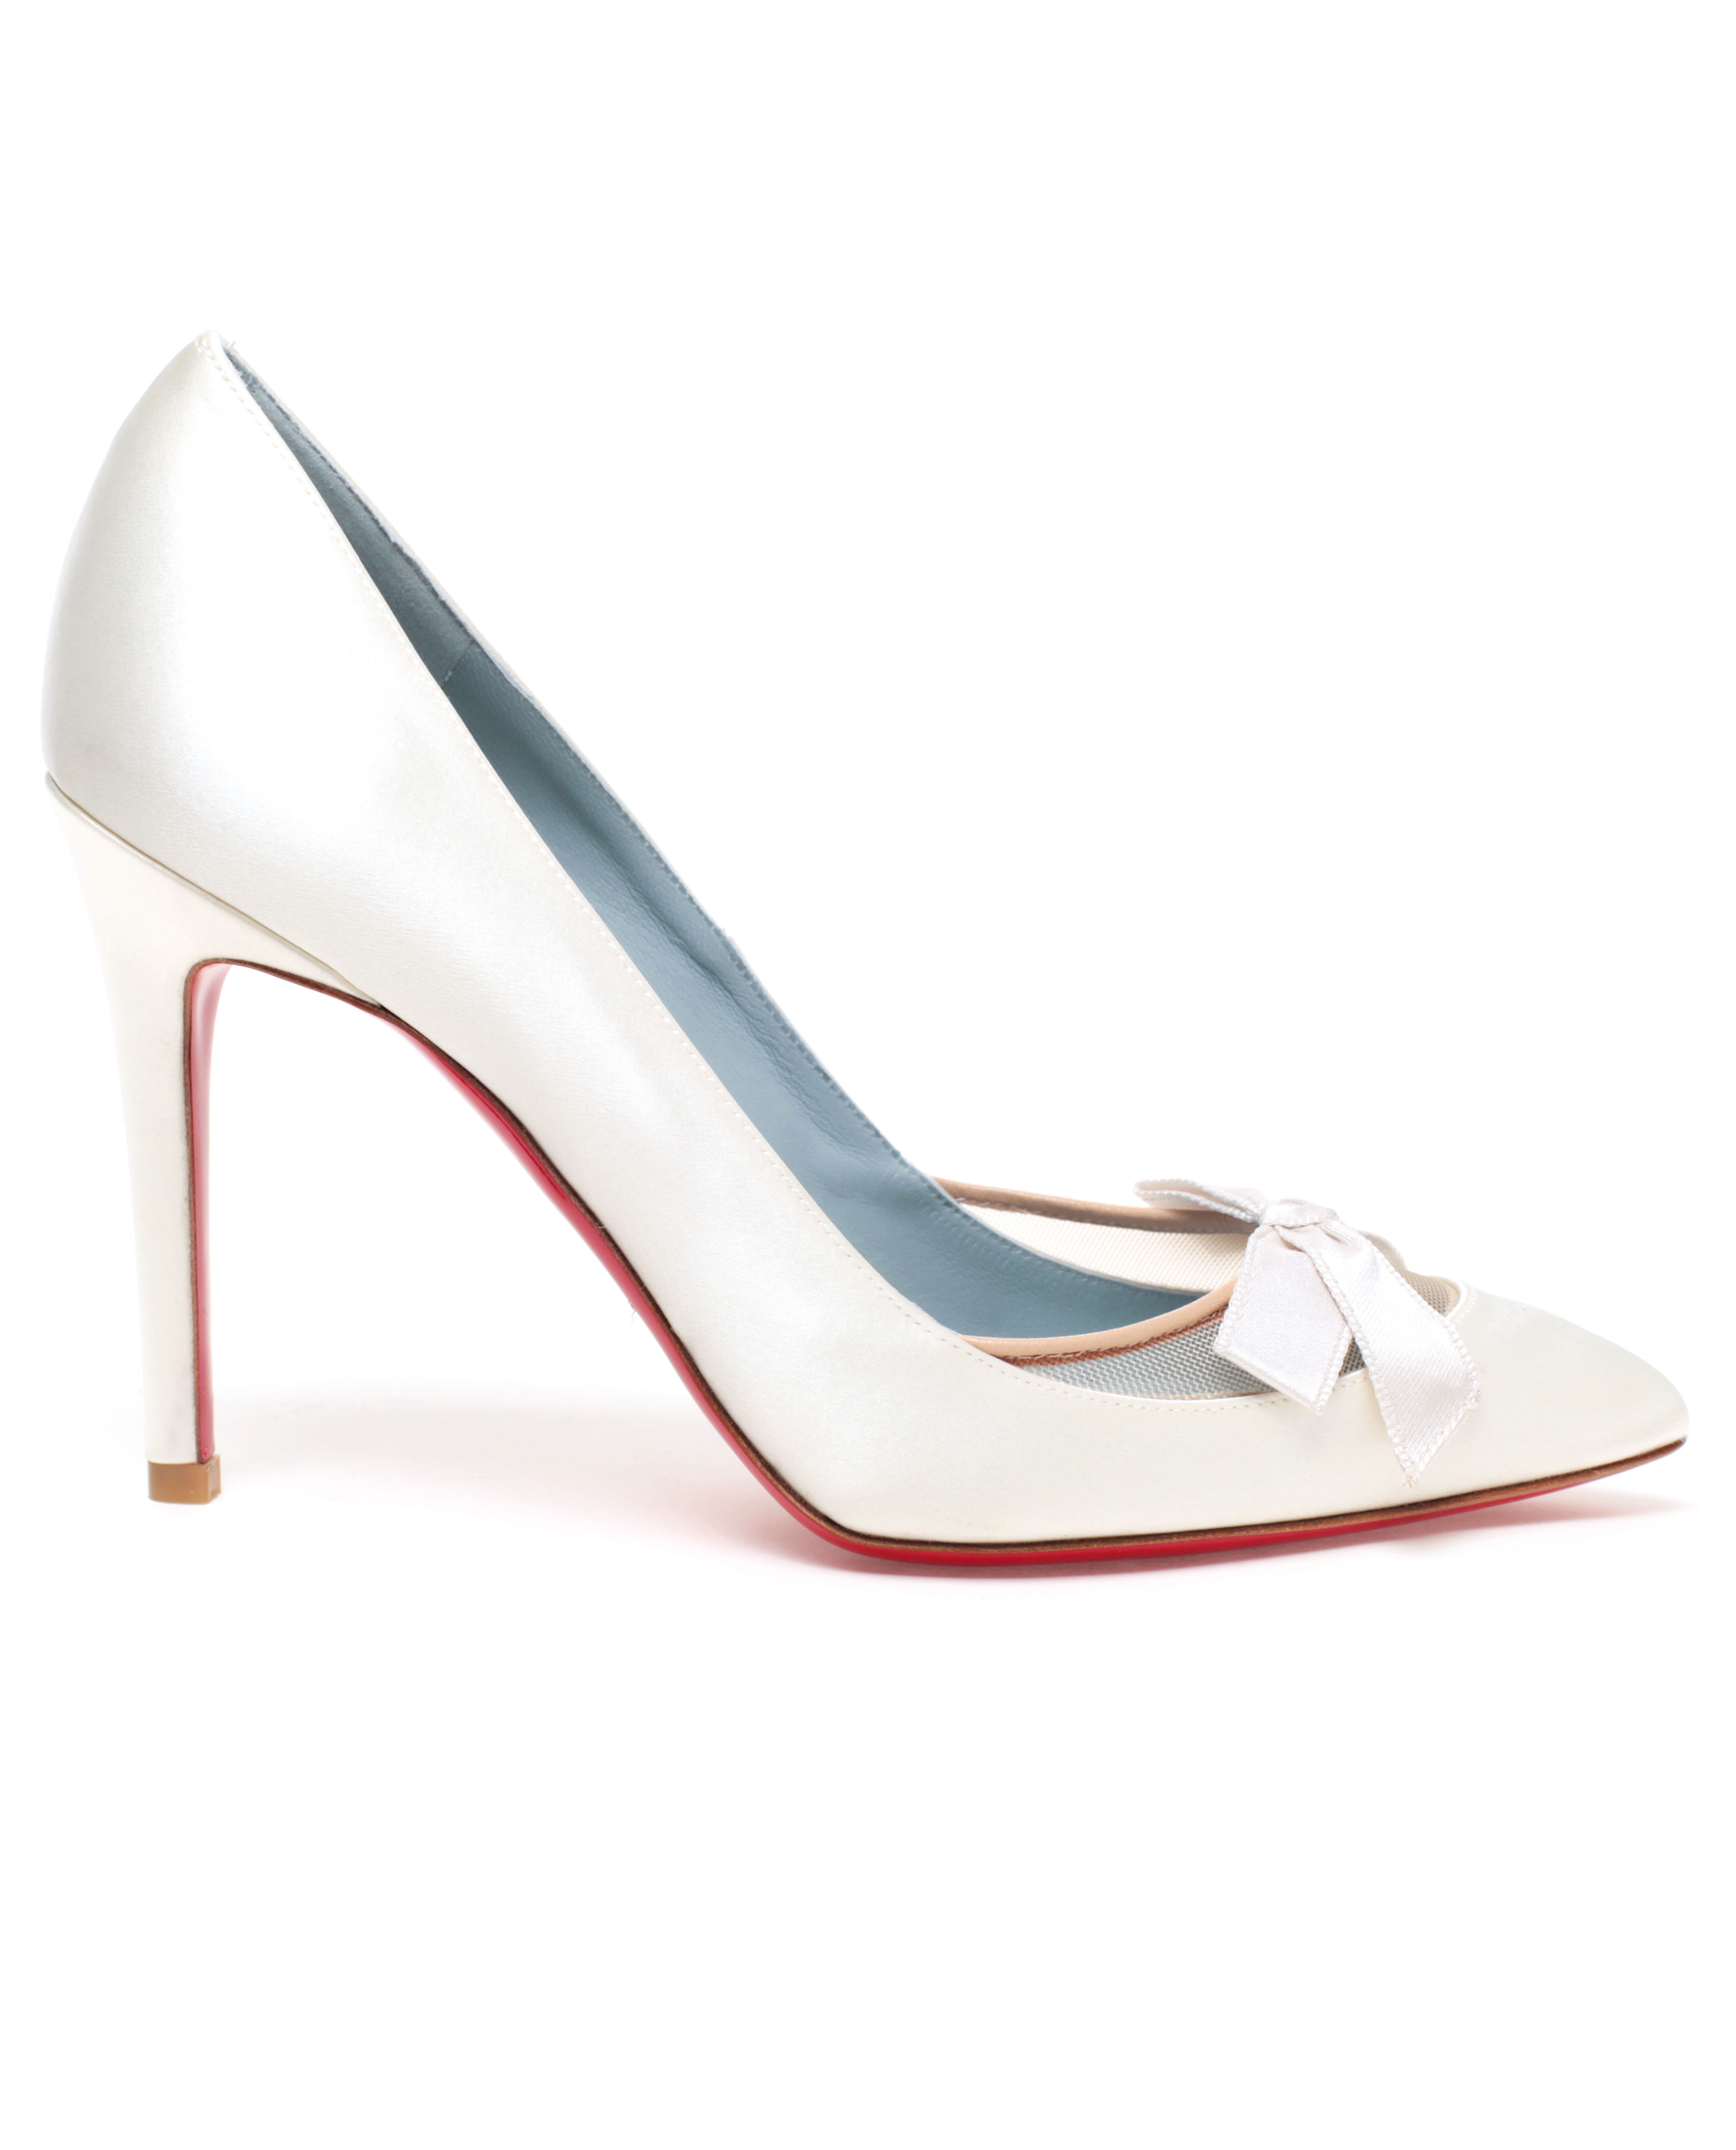 christian-louboutin-white-love-me-bridal-shoes-product-1-14524810-2-106799571-normal.jpeg